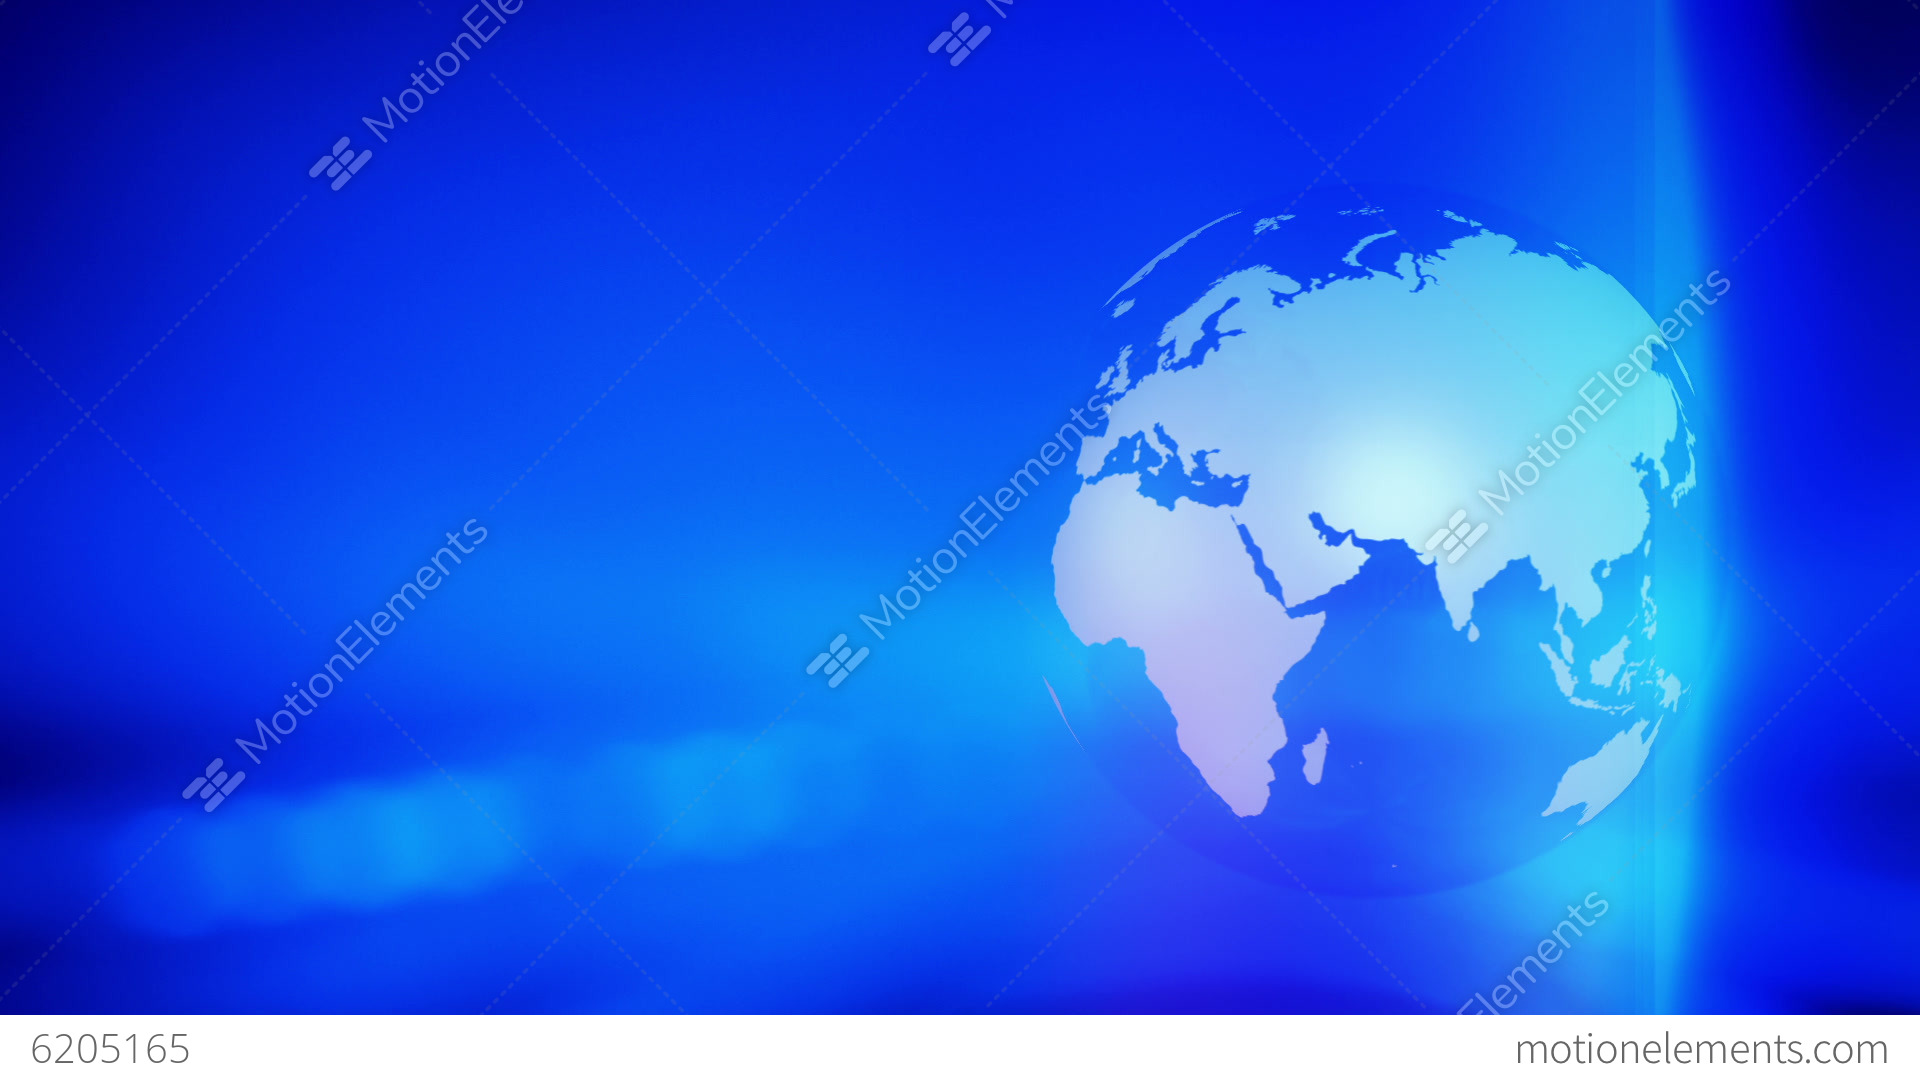 Background image rotate 90 - Rotating Globe Blue Abstract Background Stock Video Footage